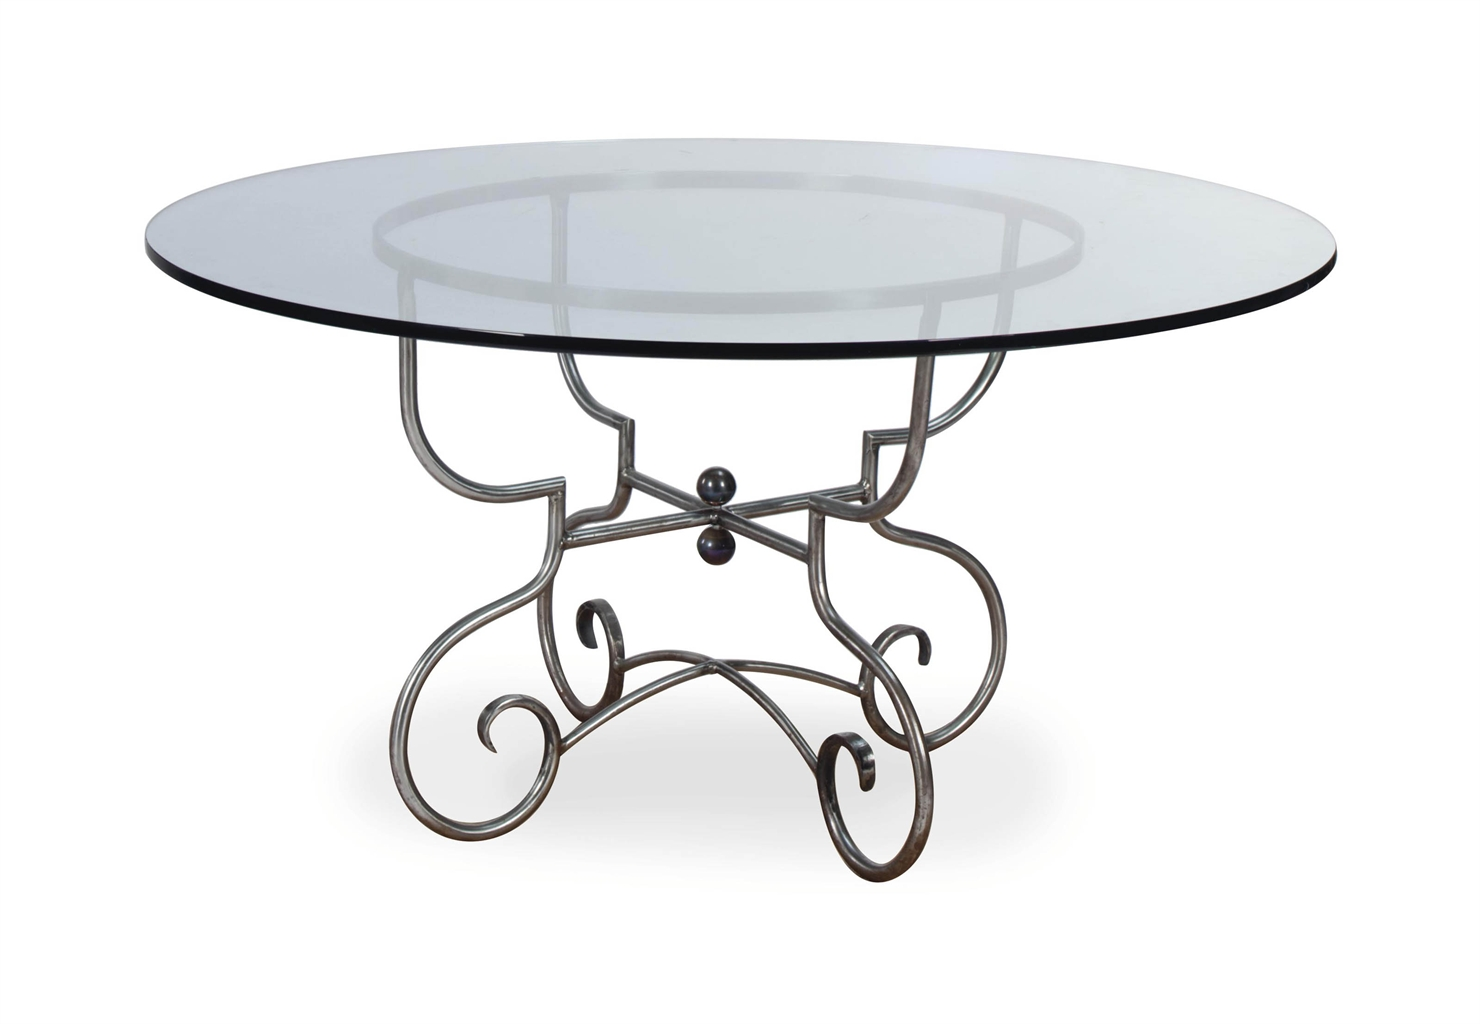 A FRENCH BRUSHED METAL AND GLASS TOP CIRCULAR DINING TABLE